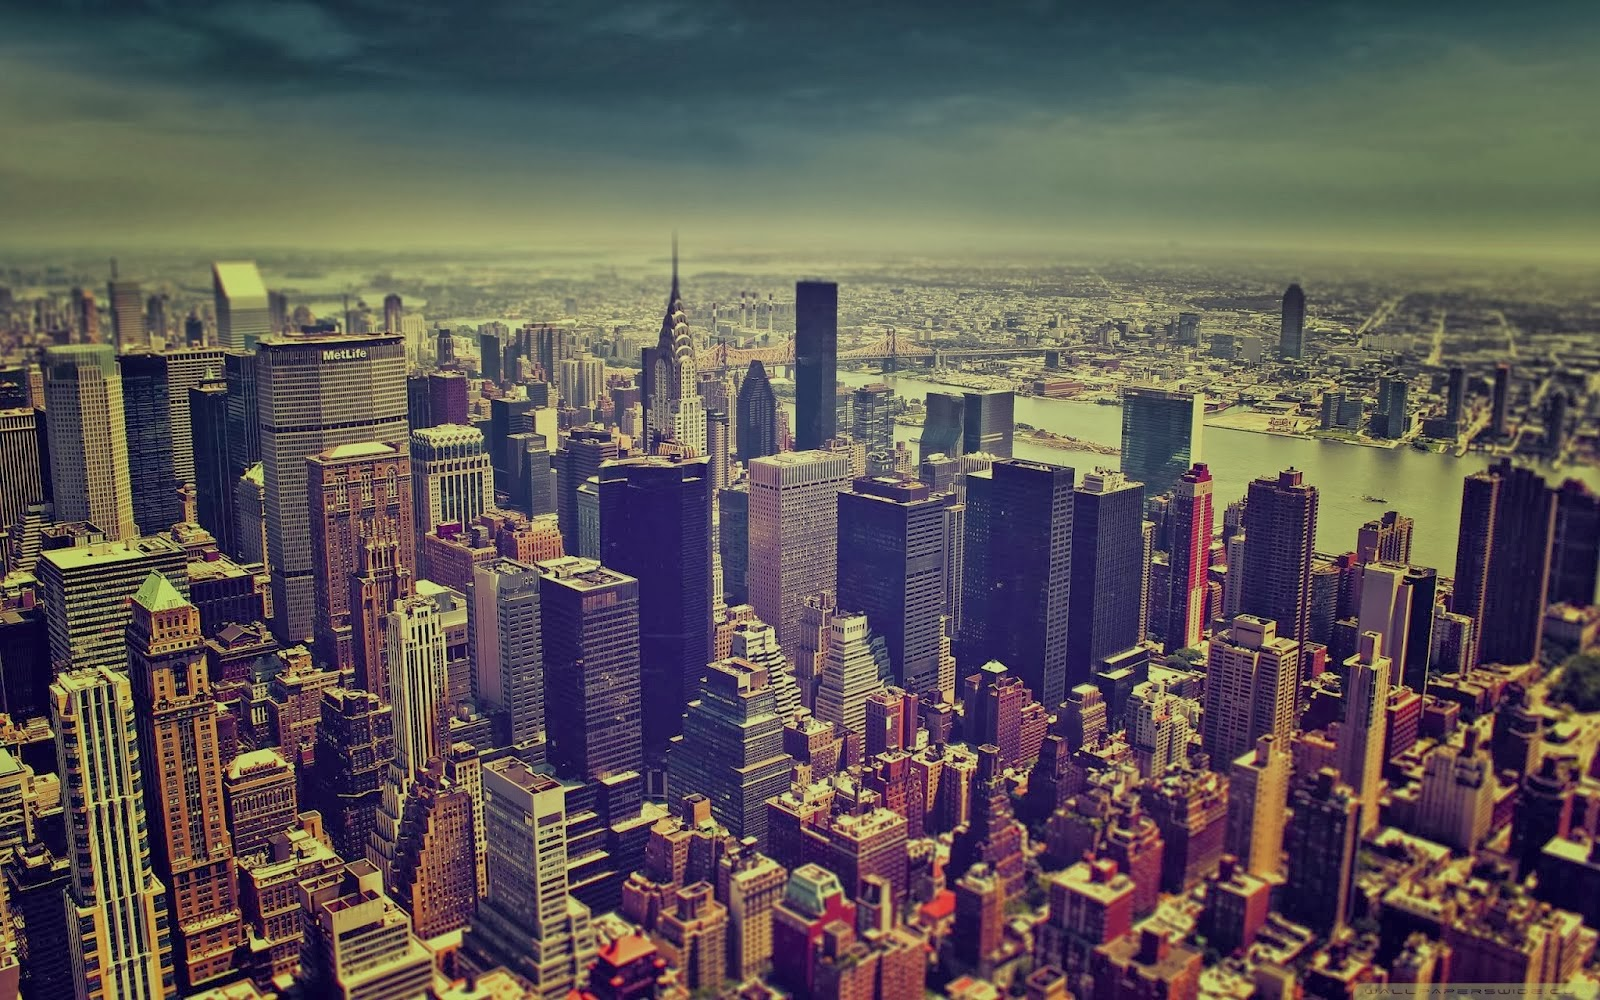 HD WALLPAPERS Download New York City HD Wallpapers 1080p 1600x1000